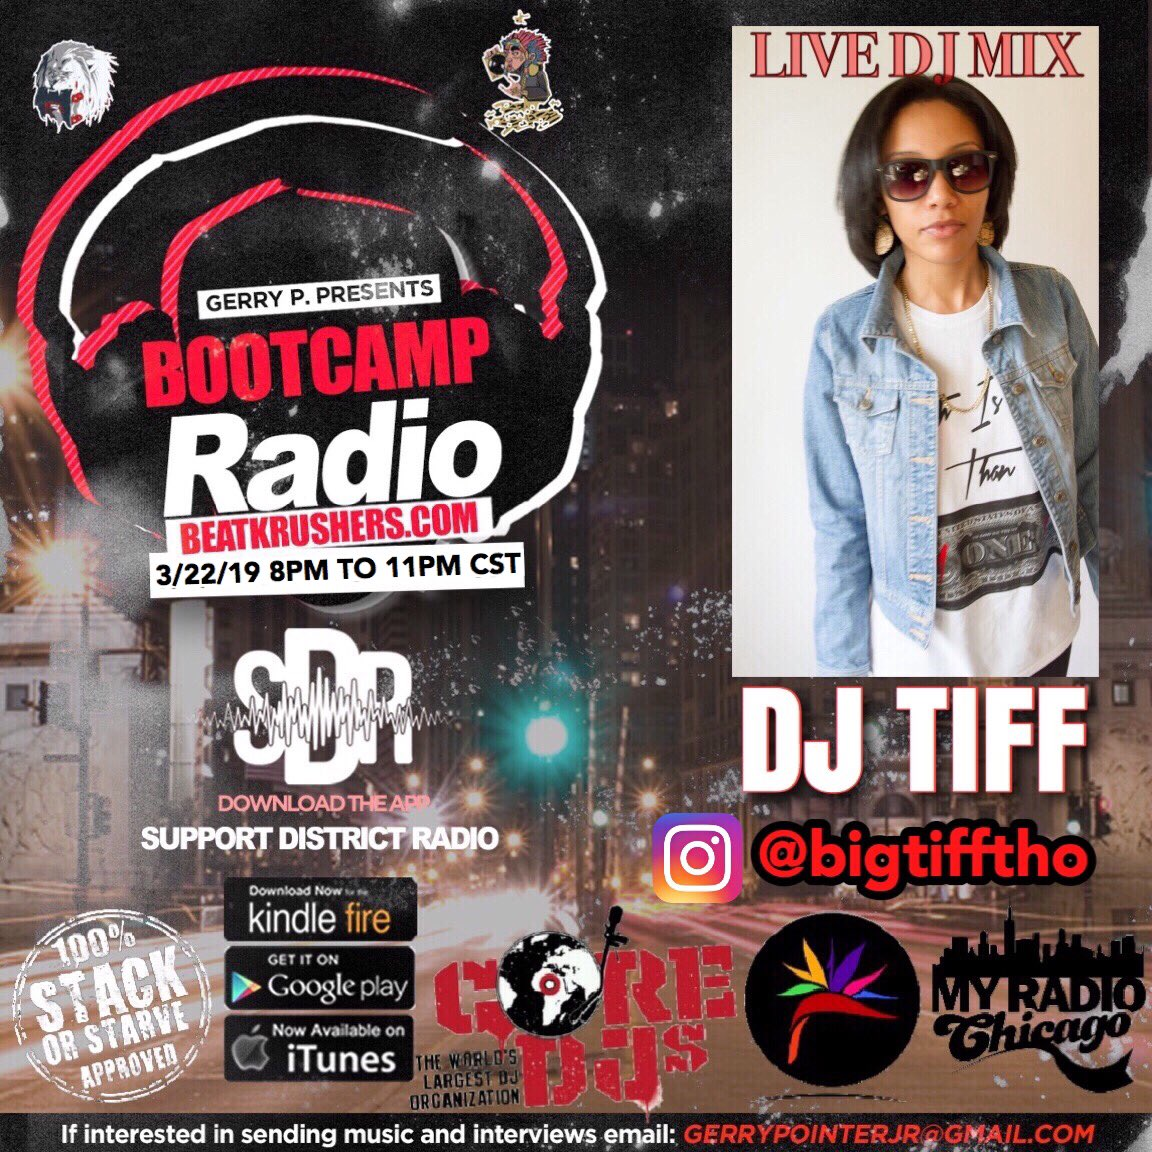 @bigtifftho #officialdjofbootcampradio will be LIVE 3/22/19‼️🎛🔊 DJ's to be part of the Line Up for @bootcampradio 2019 HTL 312.415.7802🗣☎️📥 . . #LIVEDJ #music #DJTIFF #bigtifftho #stackorstarveapproved #swankpr #dsymoneallure #gerrypentertainment #bootcampradio